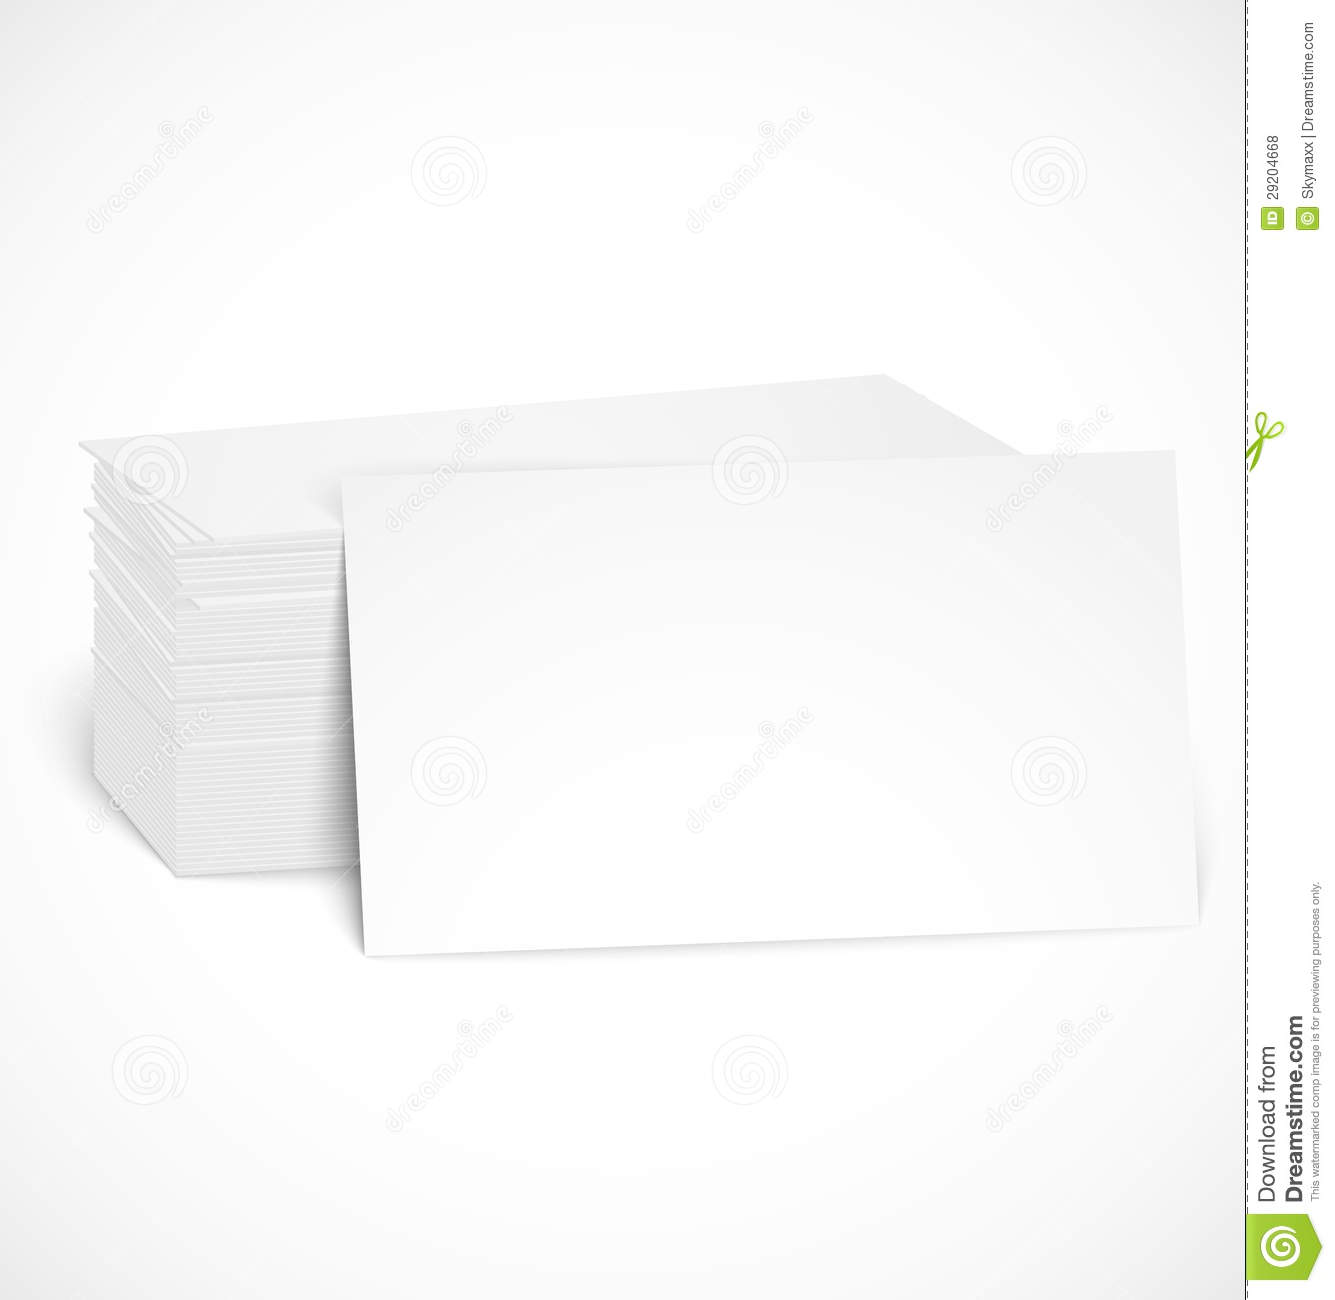 Pile Of Business Cards With Shadow Template Stock Vector ...